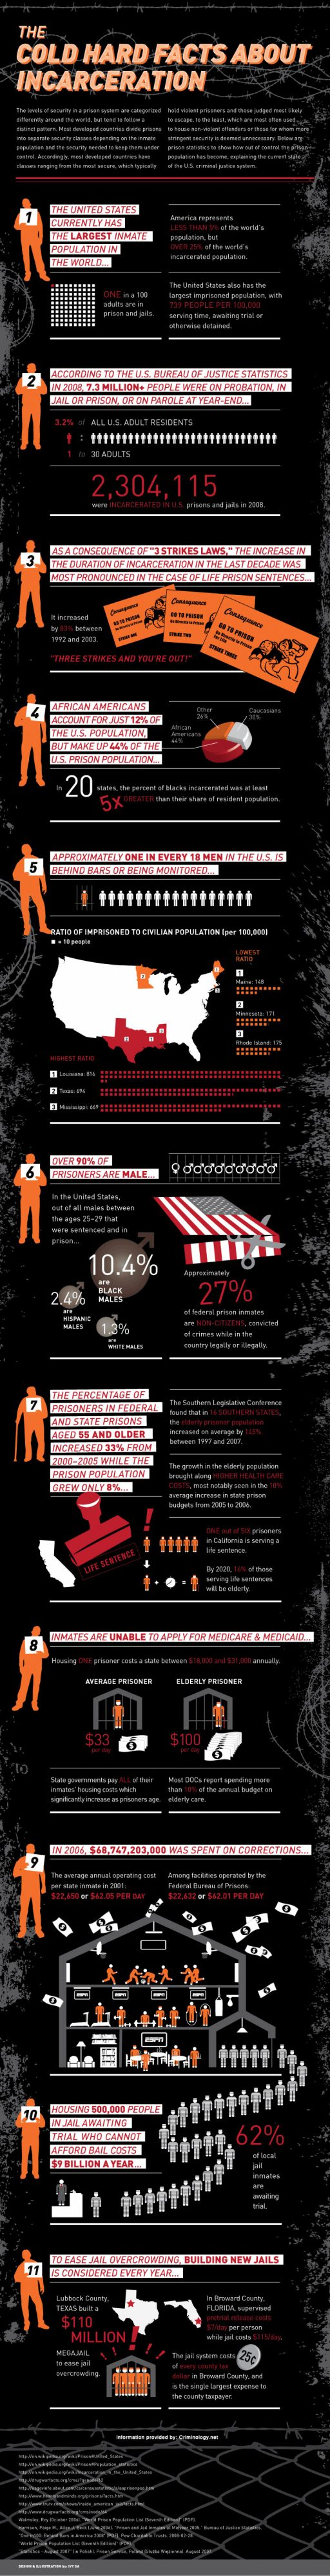 The Cold Hard Facts About Incarceration (Infographic)